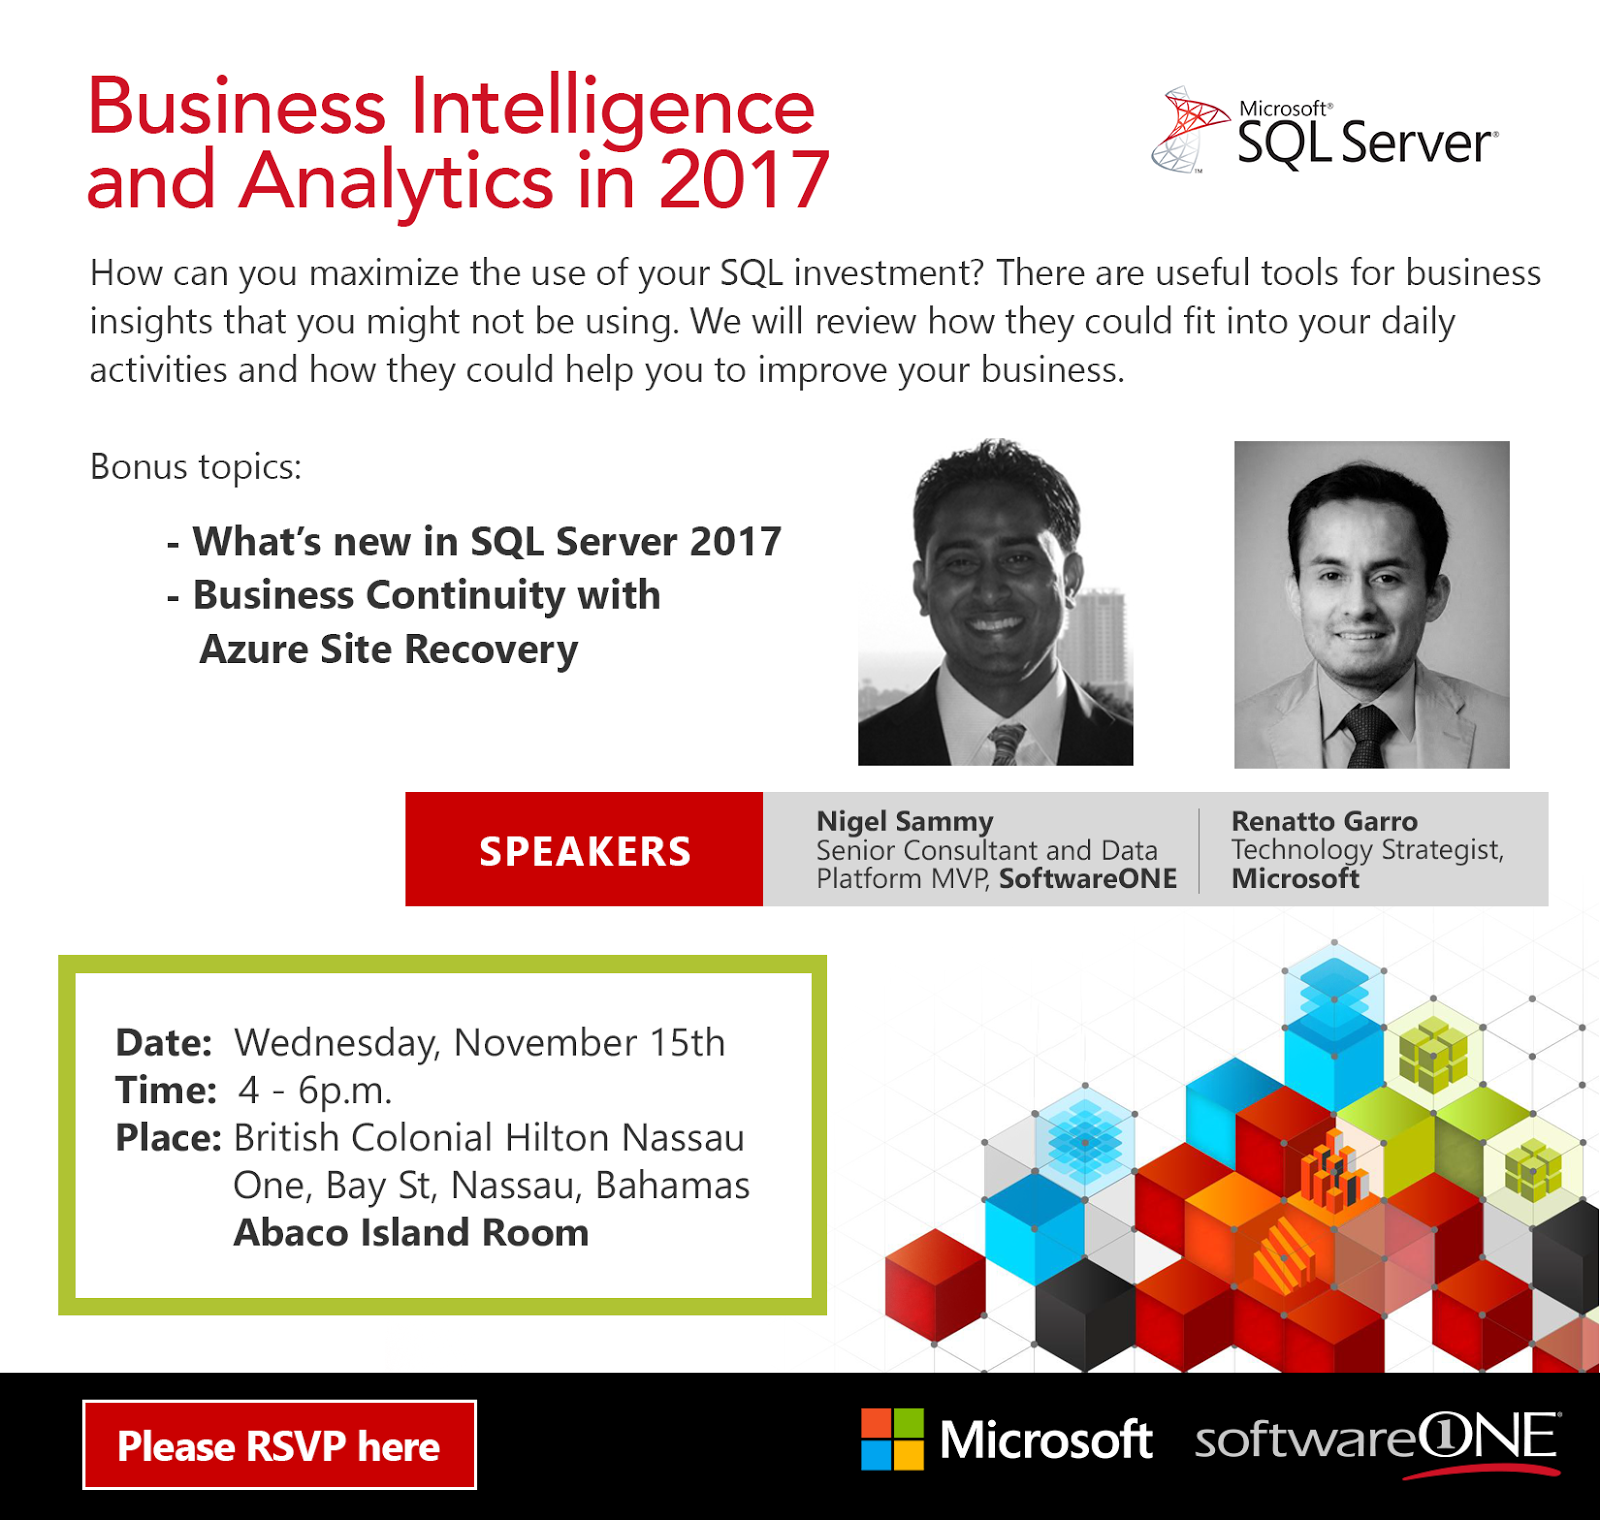 https://www.eventbrite.com/e/business-intelligence-and-analytics-in-2017-tickets-39464149333